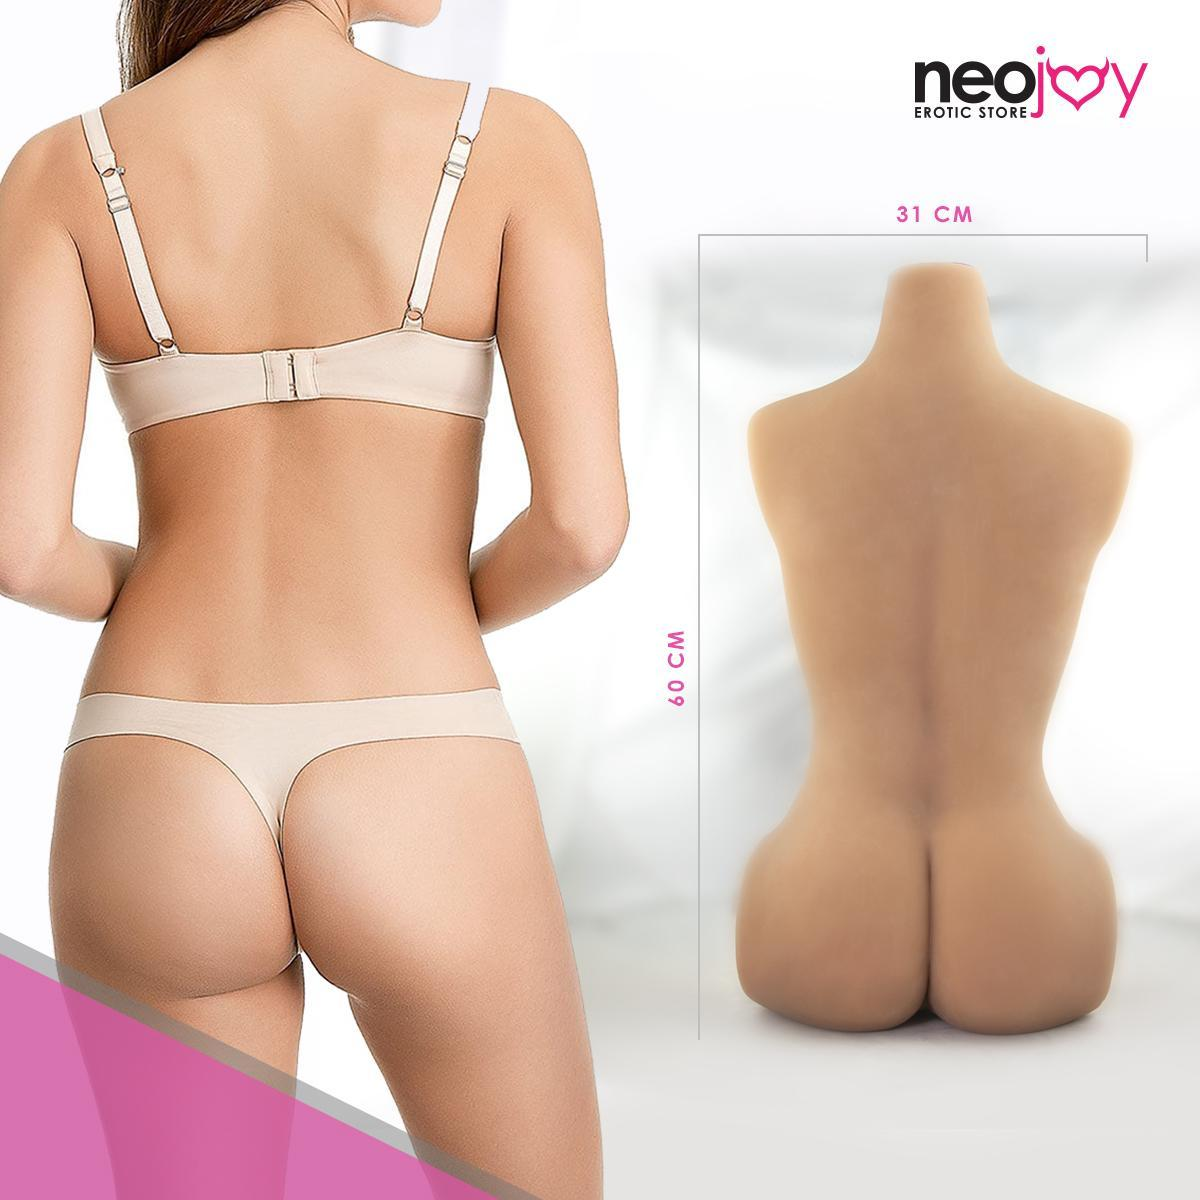 Neojoy Easy Torso & Head - Realistic Sex Doll Torso With Head Connector - Tan - 14kg